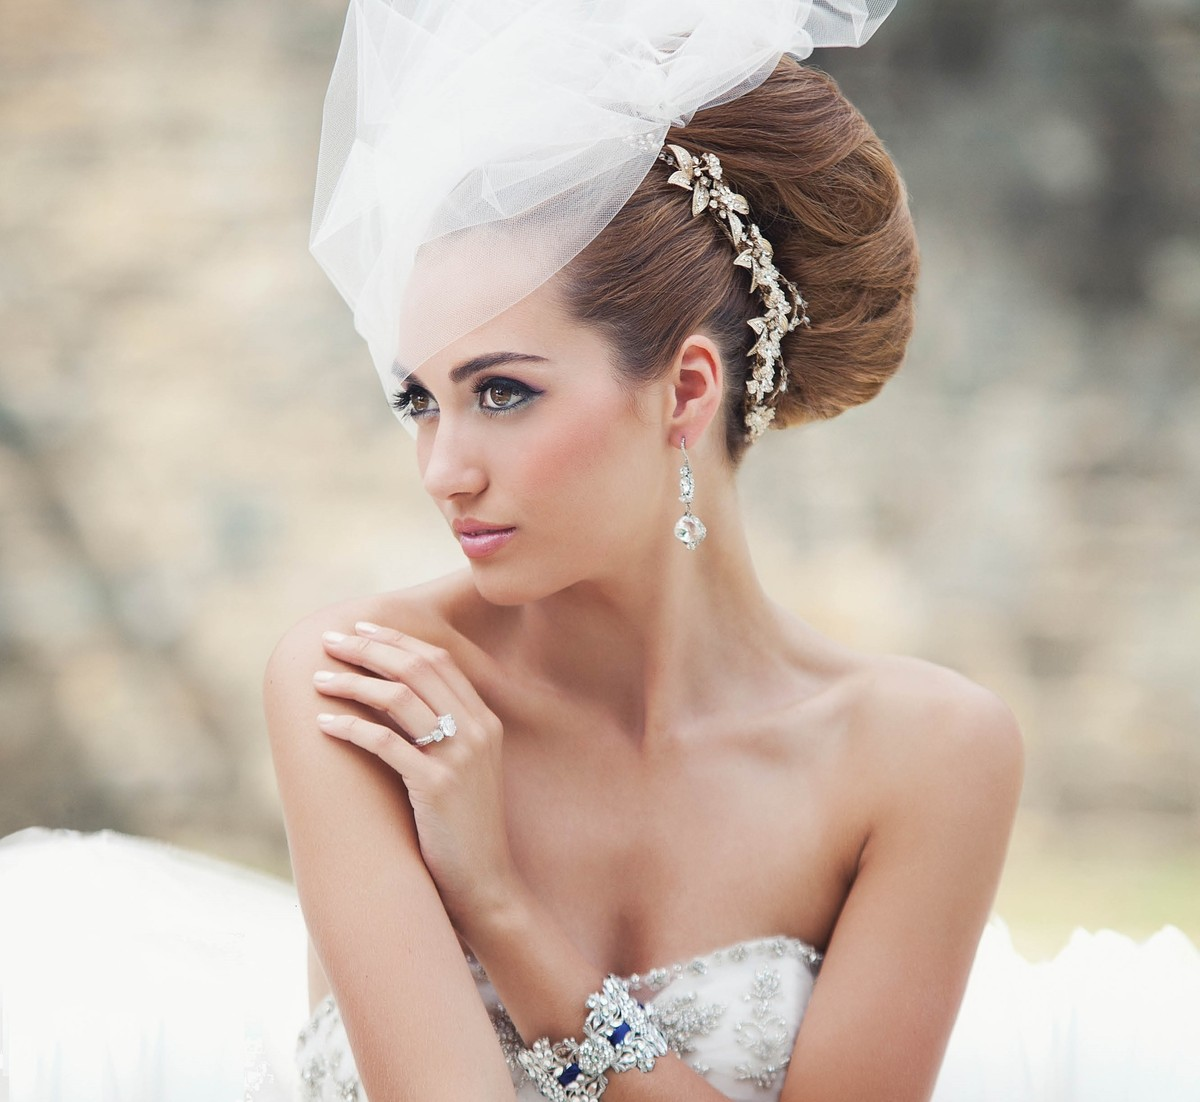 bridal hair by remona reviews - reston, va - 170 reviews